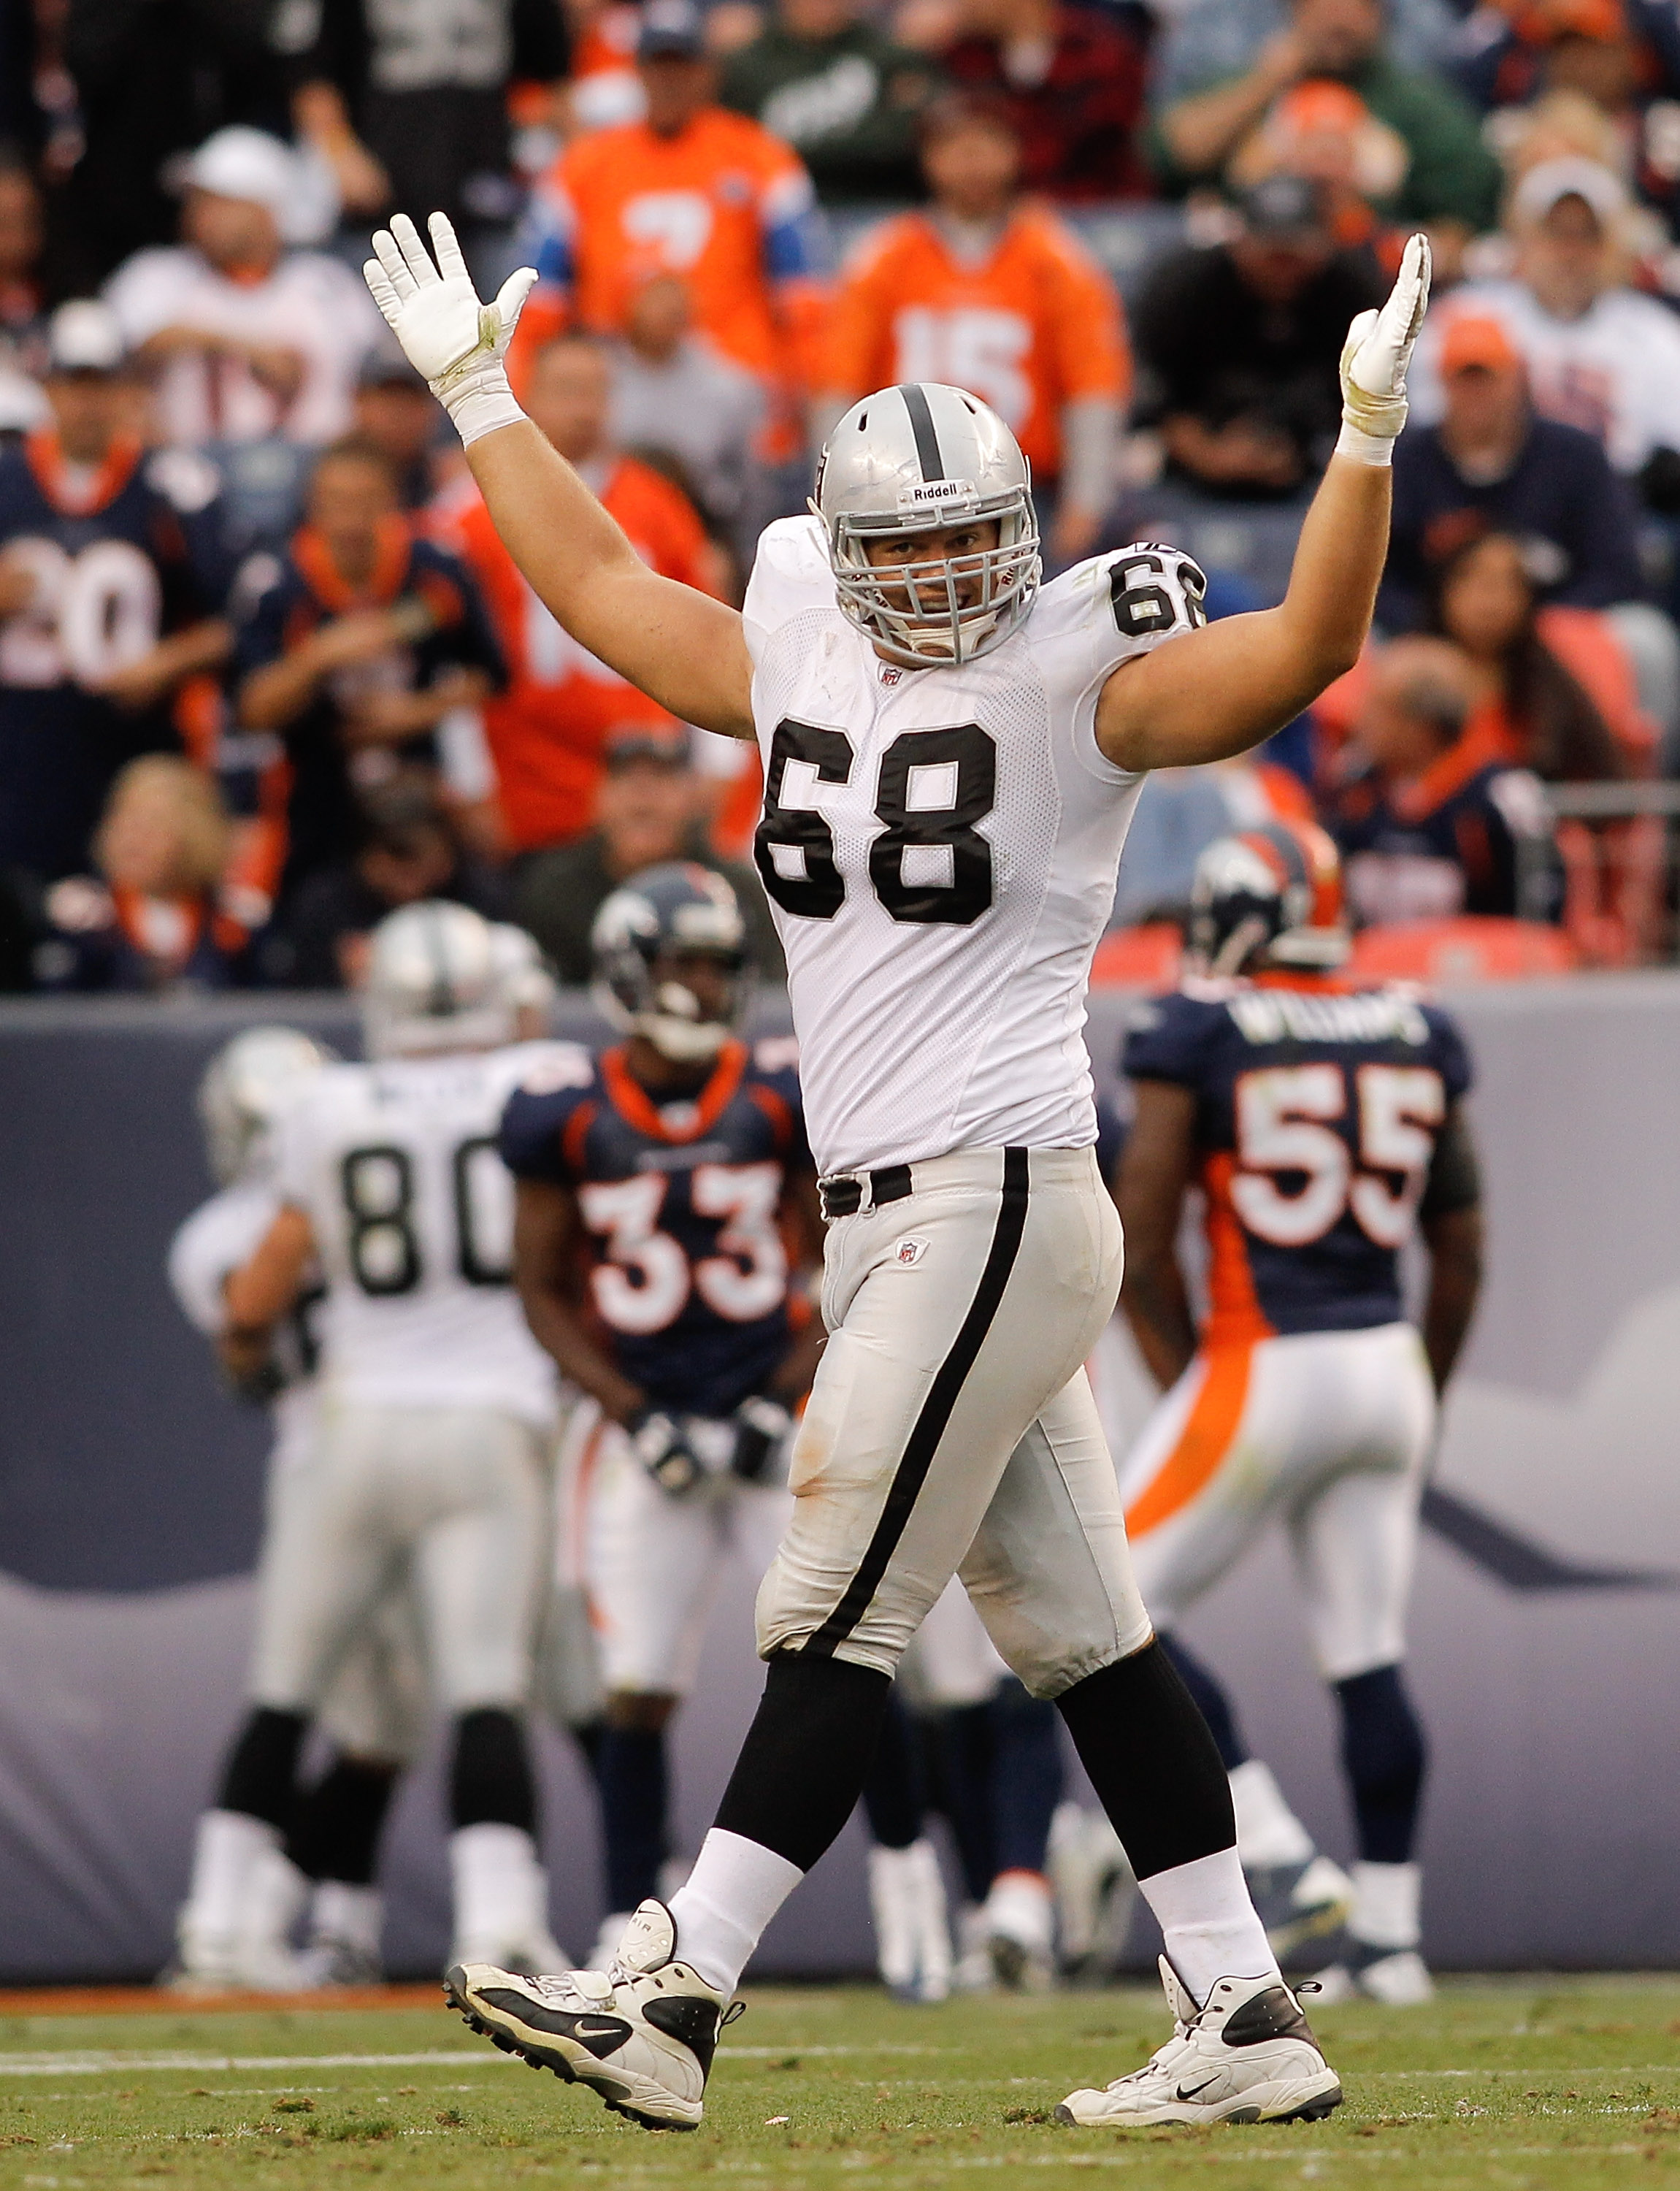 DENVER - OCTOBER 24:  Center Jared Veldheer #68 of the Oakland Raiders celebrates a touchdown by teammate Darren McFadden (not pictured) in the third quarter against the Denver Broncos at INVESCO Field at Mile High on October 24, 2010 in Denver, Colorado.